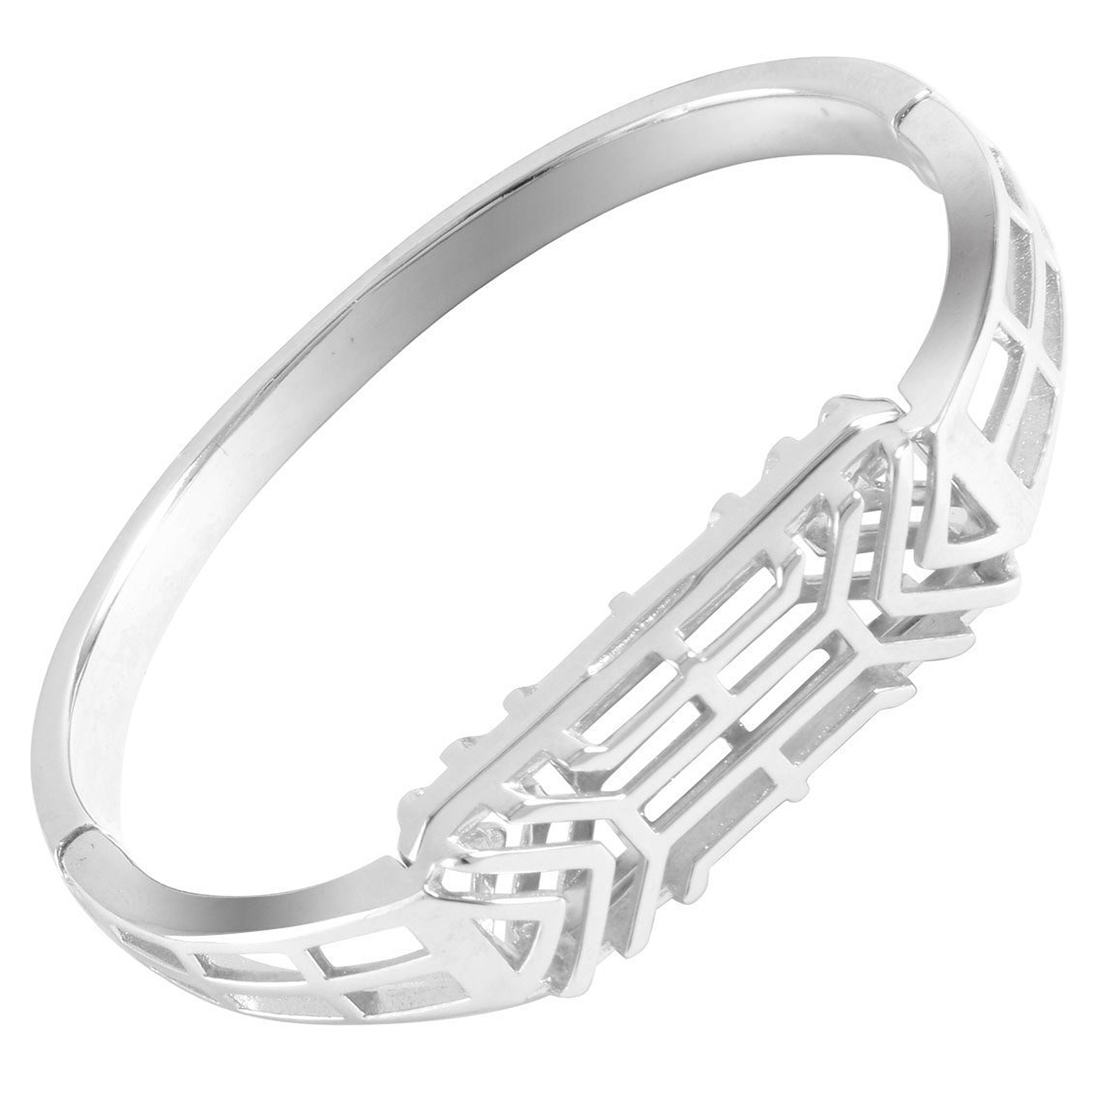 Alloy Bangle Watch Bands for Fitbit Flex 2, All New Hollow-out Crafts Design Bracelet Band for Flex 2